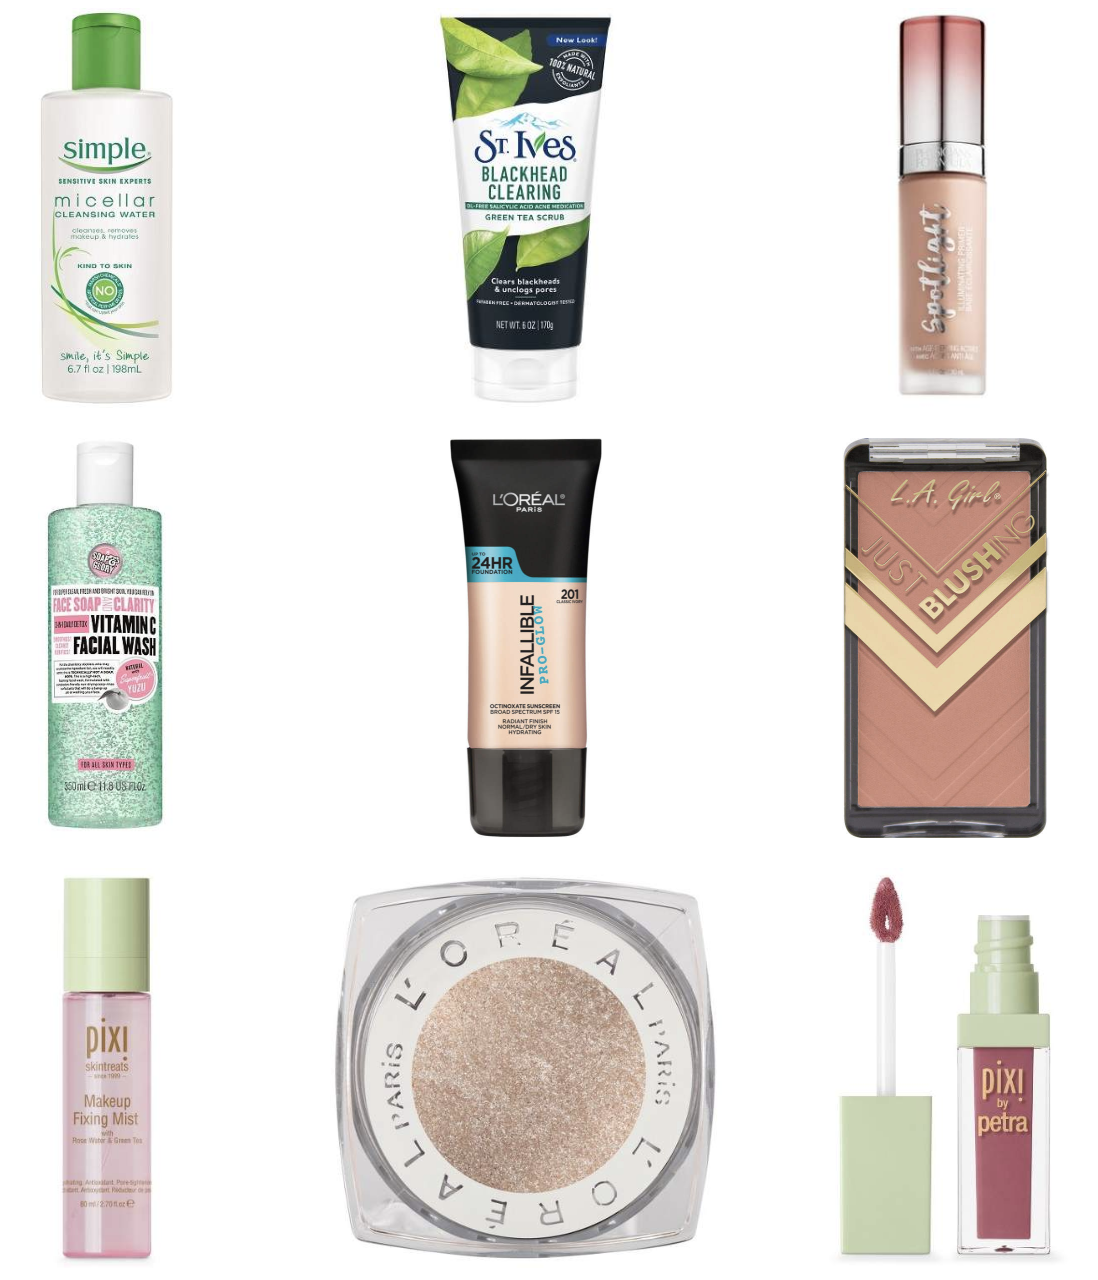 8 Skin-Clearing Beauty Products You Need toTry 8 Skin-Clearing Beauty Products You Need toTry new pics